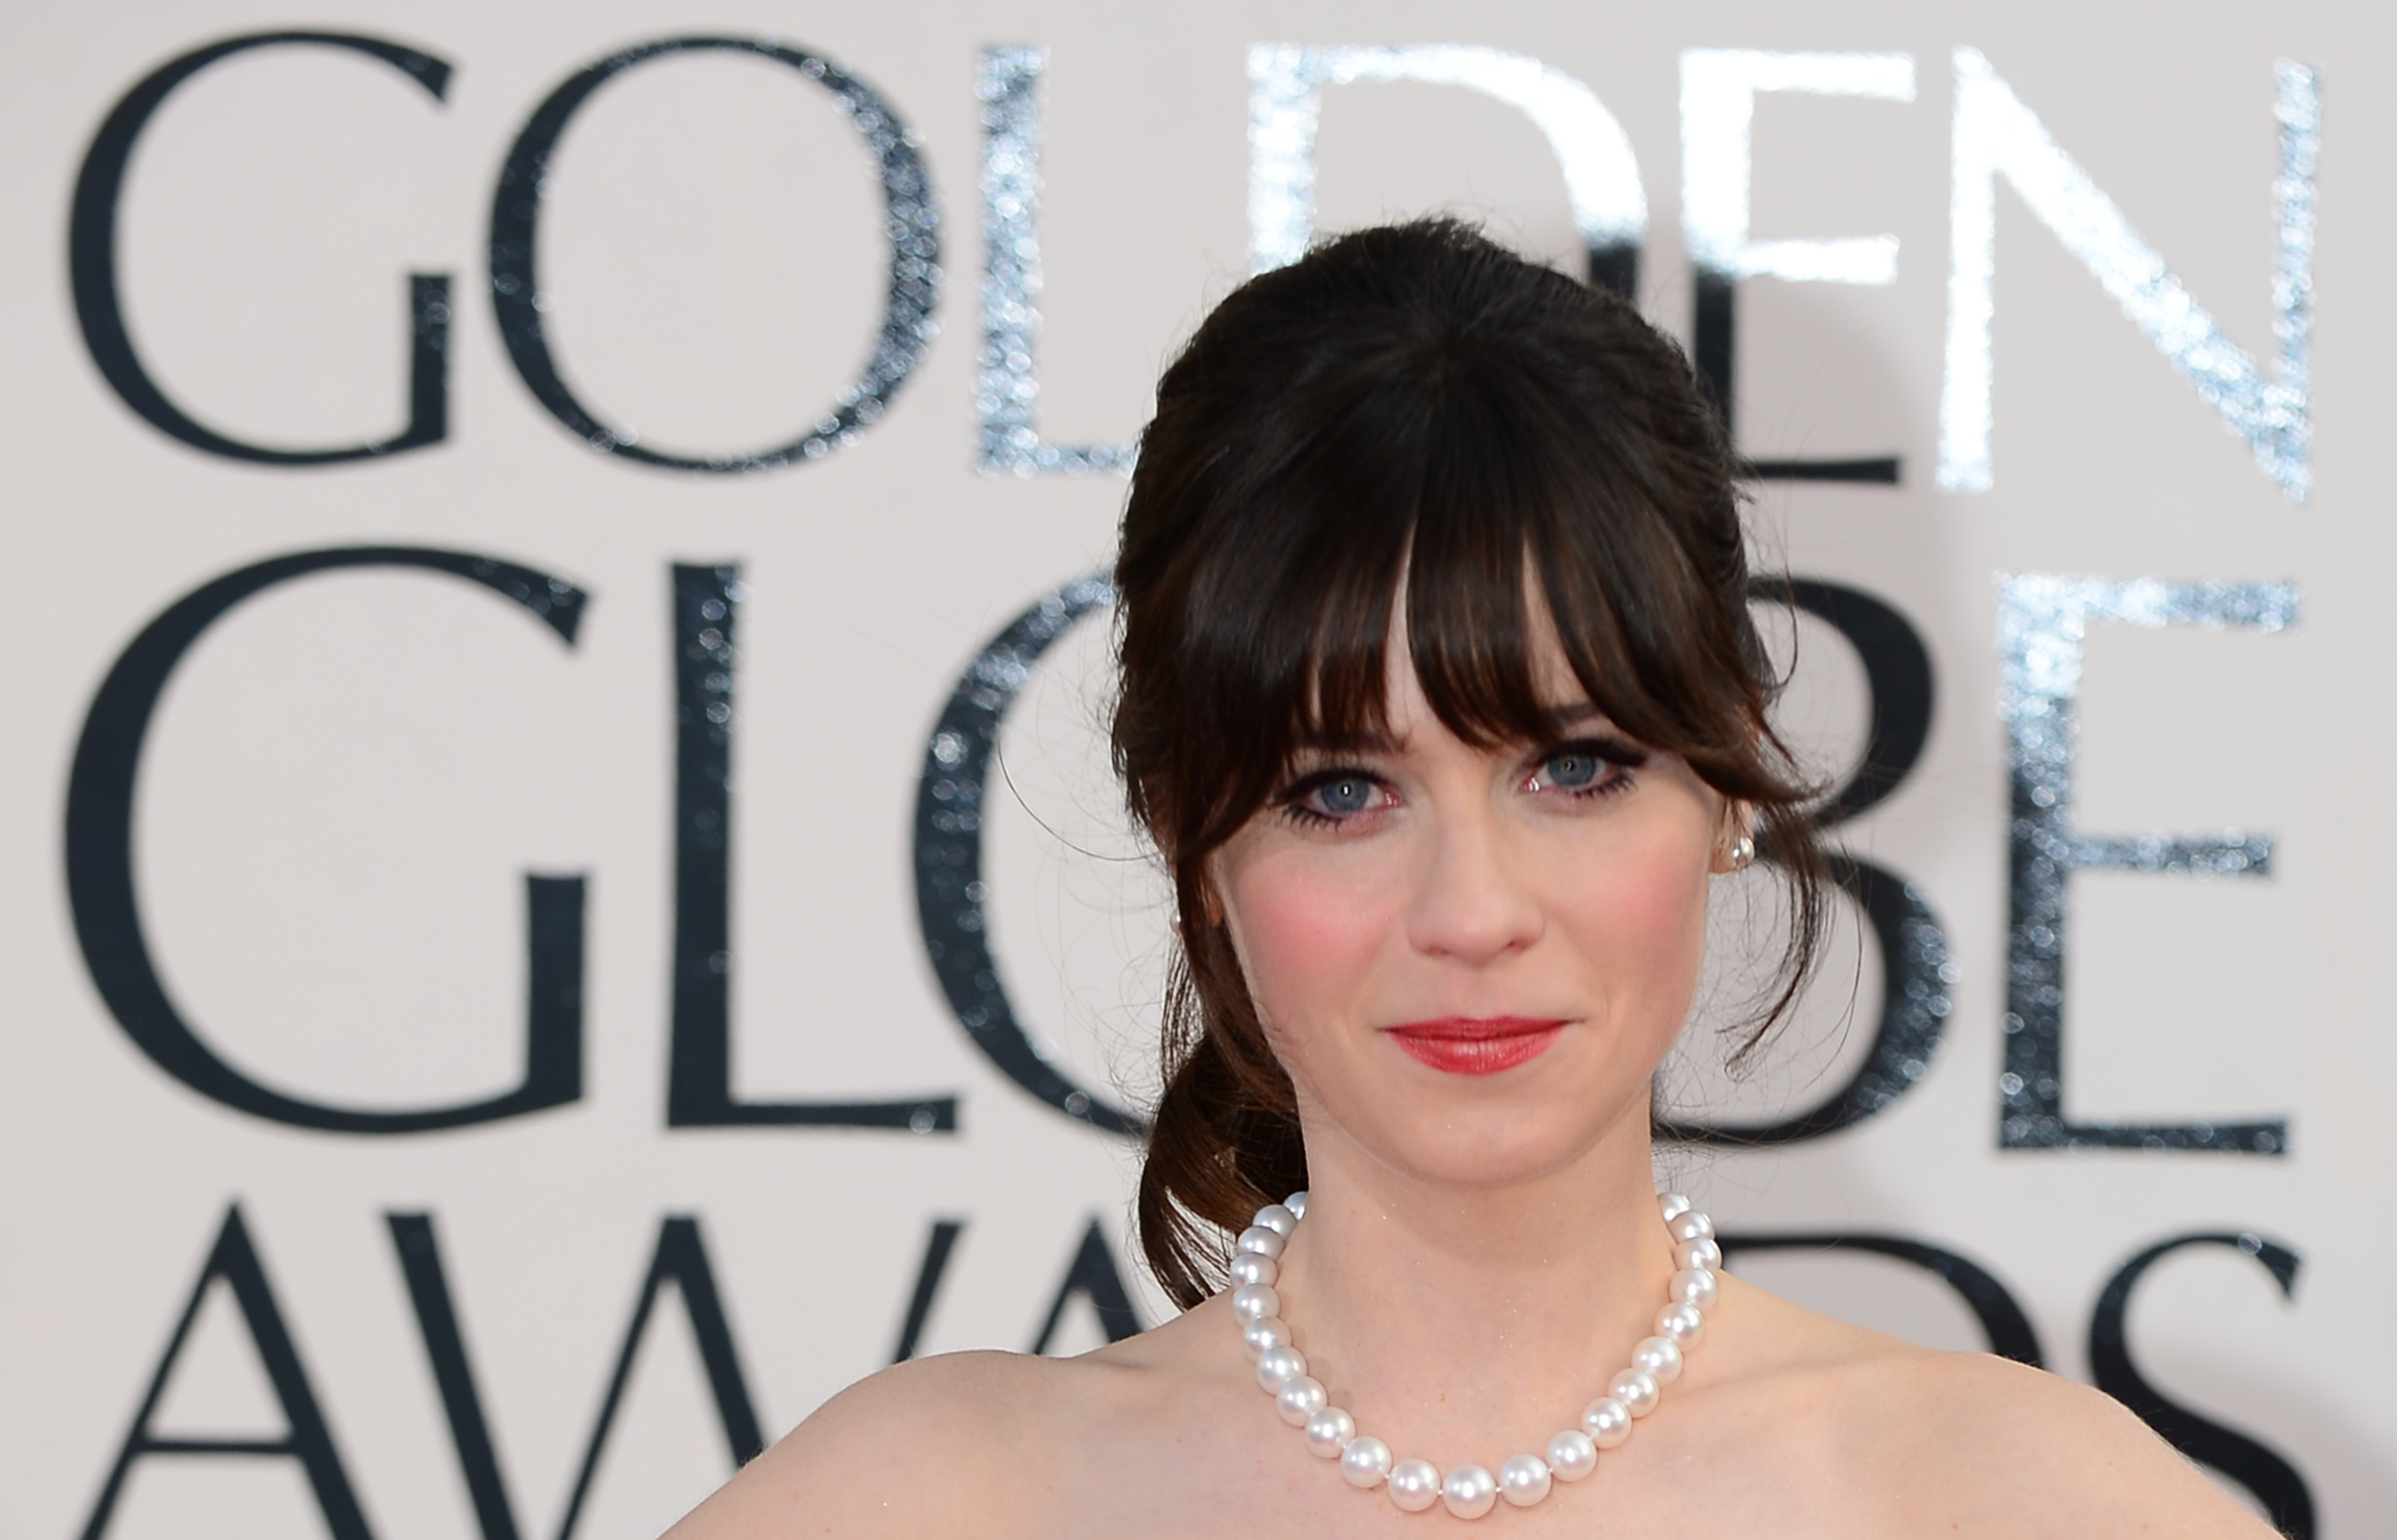 Zooey Deschanel Covers Cosmopolitan Is Almost Unrecognizable Without Her Usual Blunt Bangs